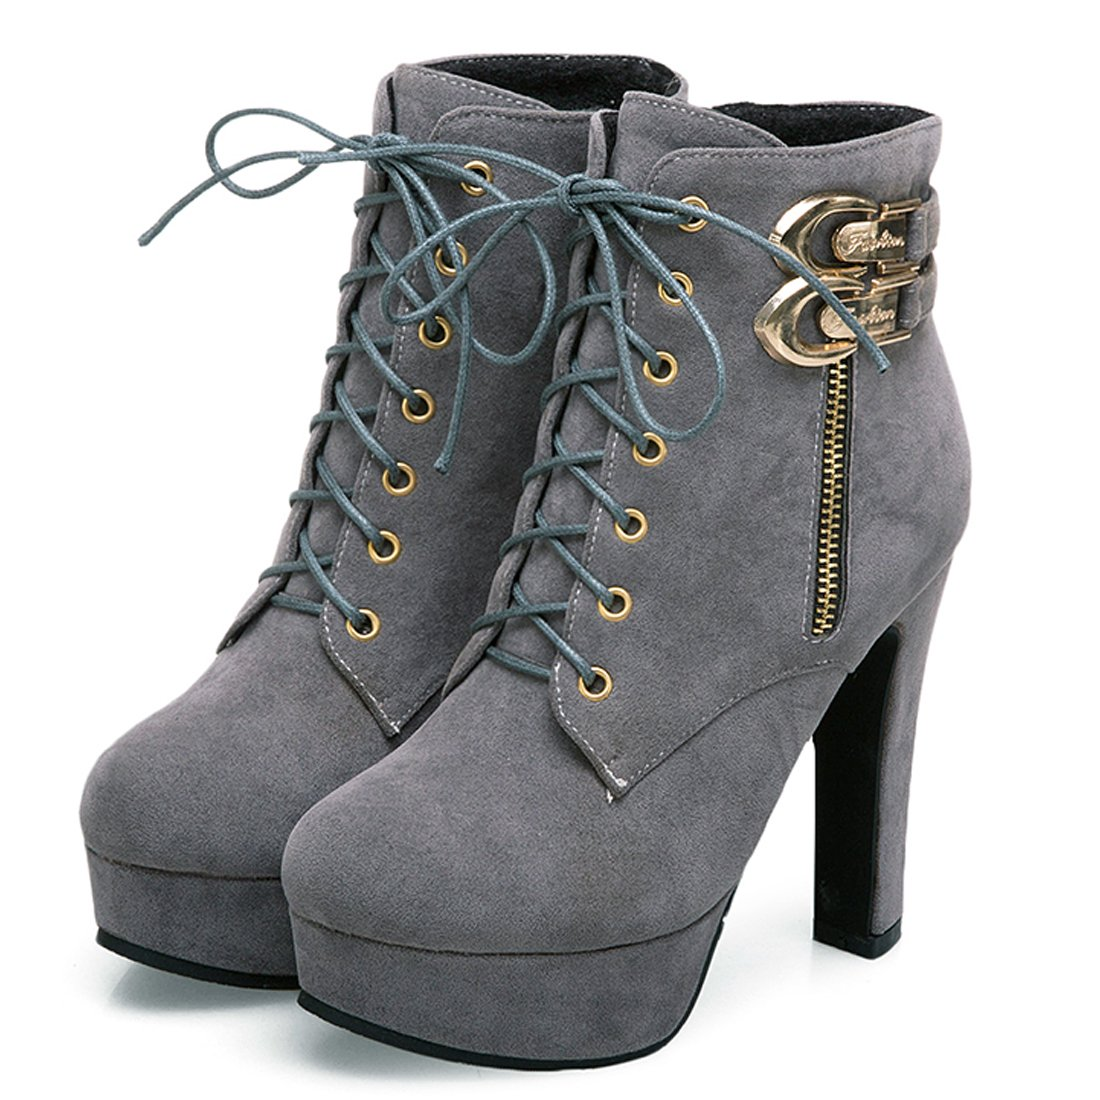 85e3c46ef5 Suede;Rubber sole. Round toe,Platform high heel,Side zipper,Lace up closure  for easy ajustment short booties shoes. Heel measures approximately 4.72